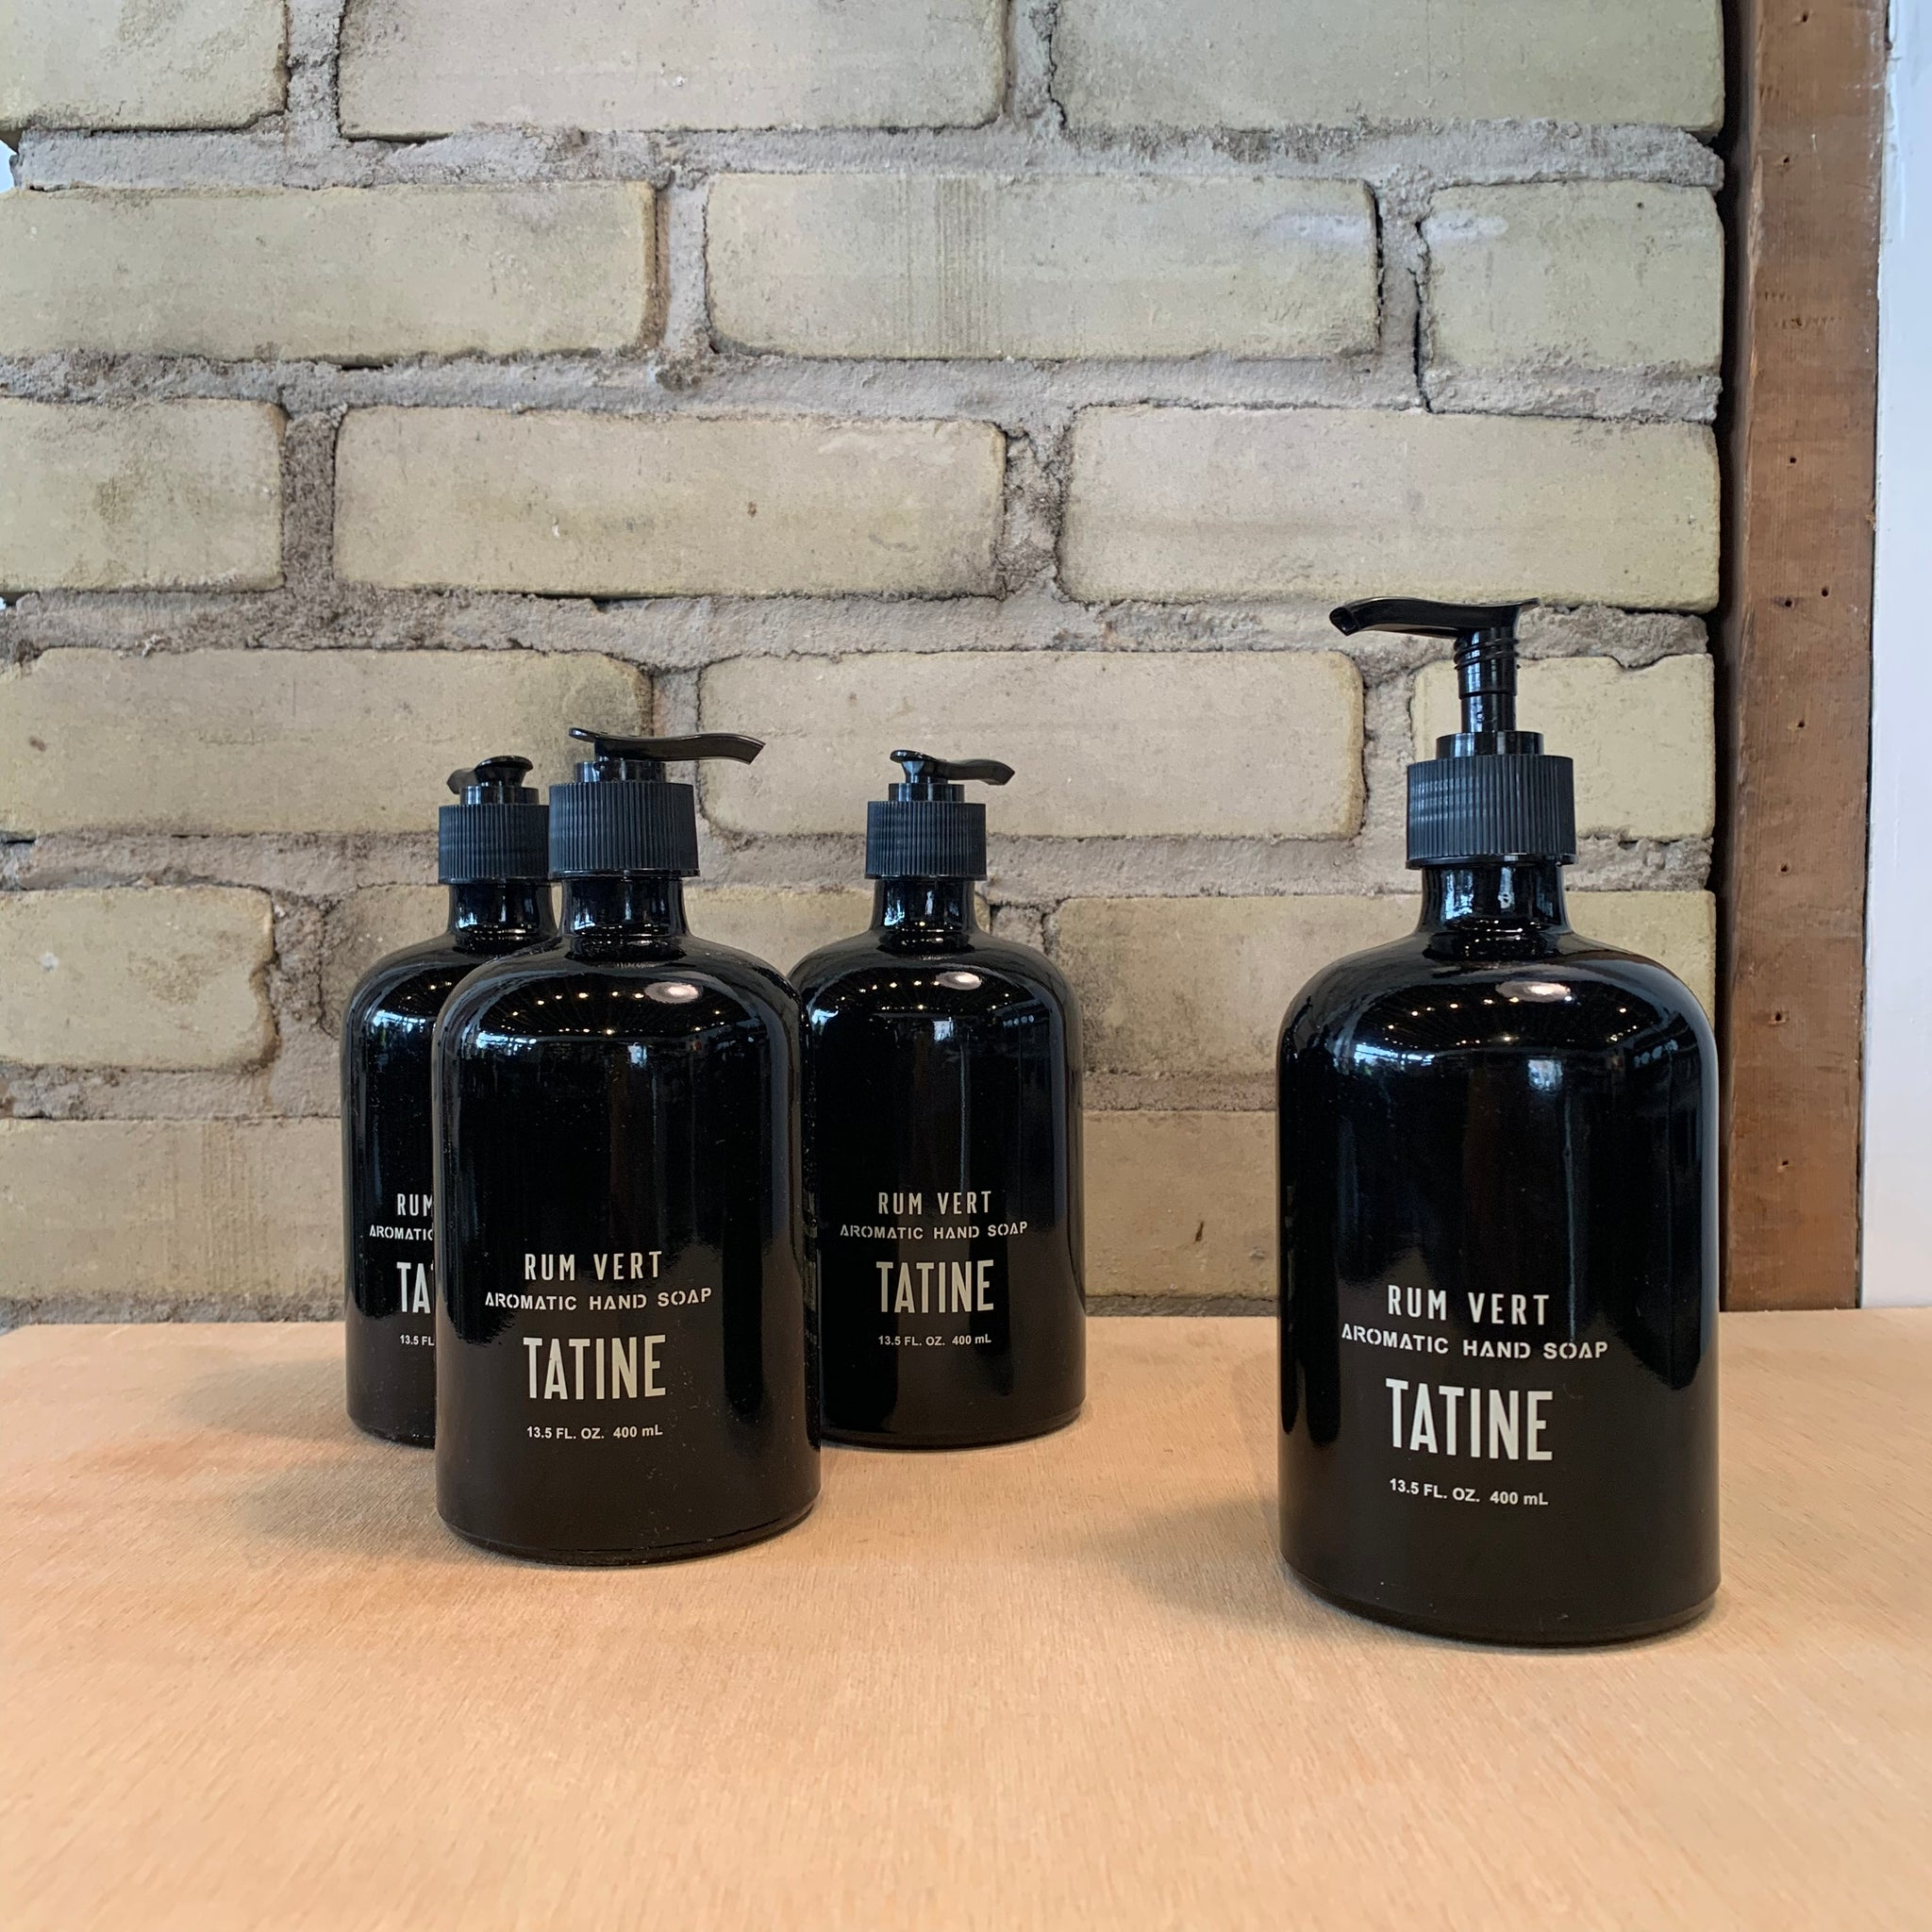 Rum Vert Soap and Lotion by Tatine